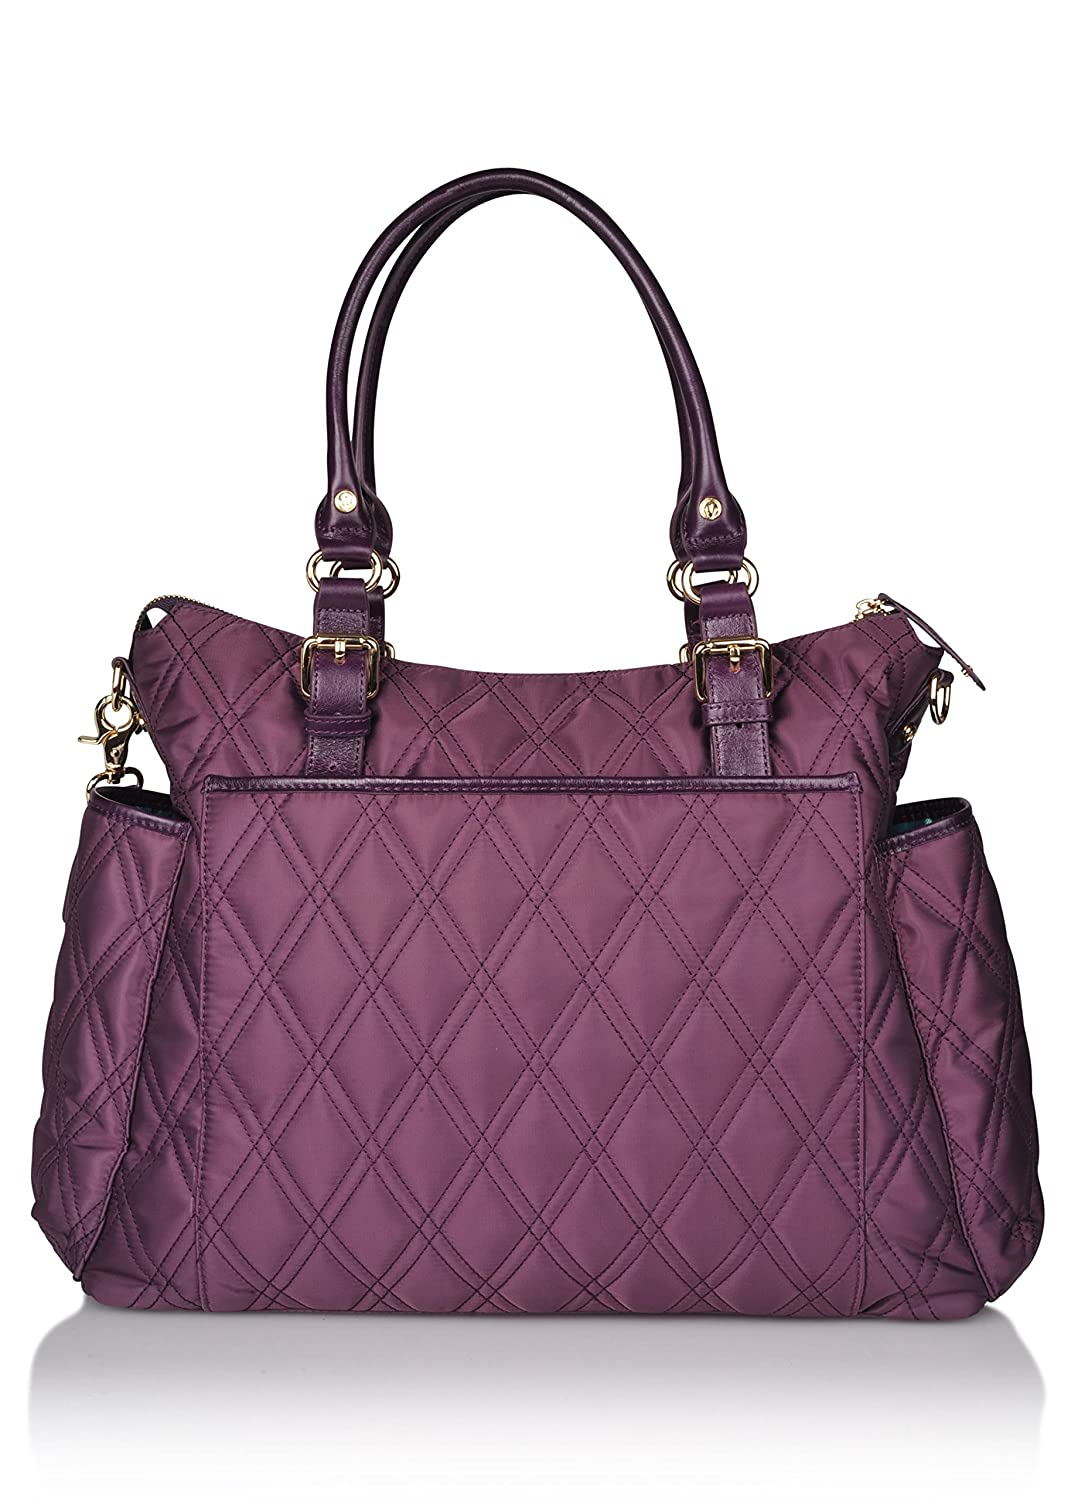 897178d450 Amazon.com   Luxury Diaper Bag in Stylish Burgundy Maroon